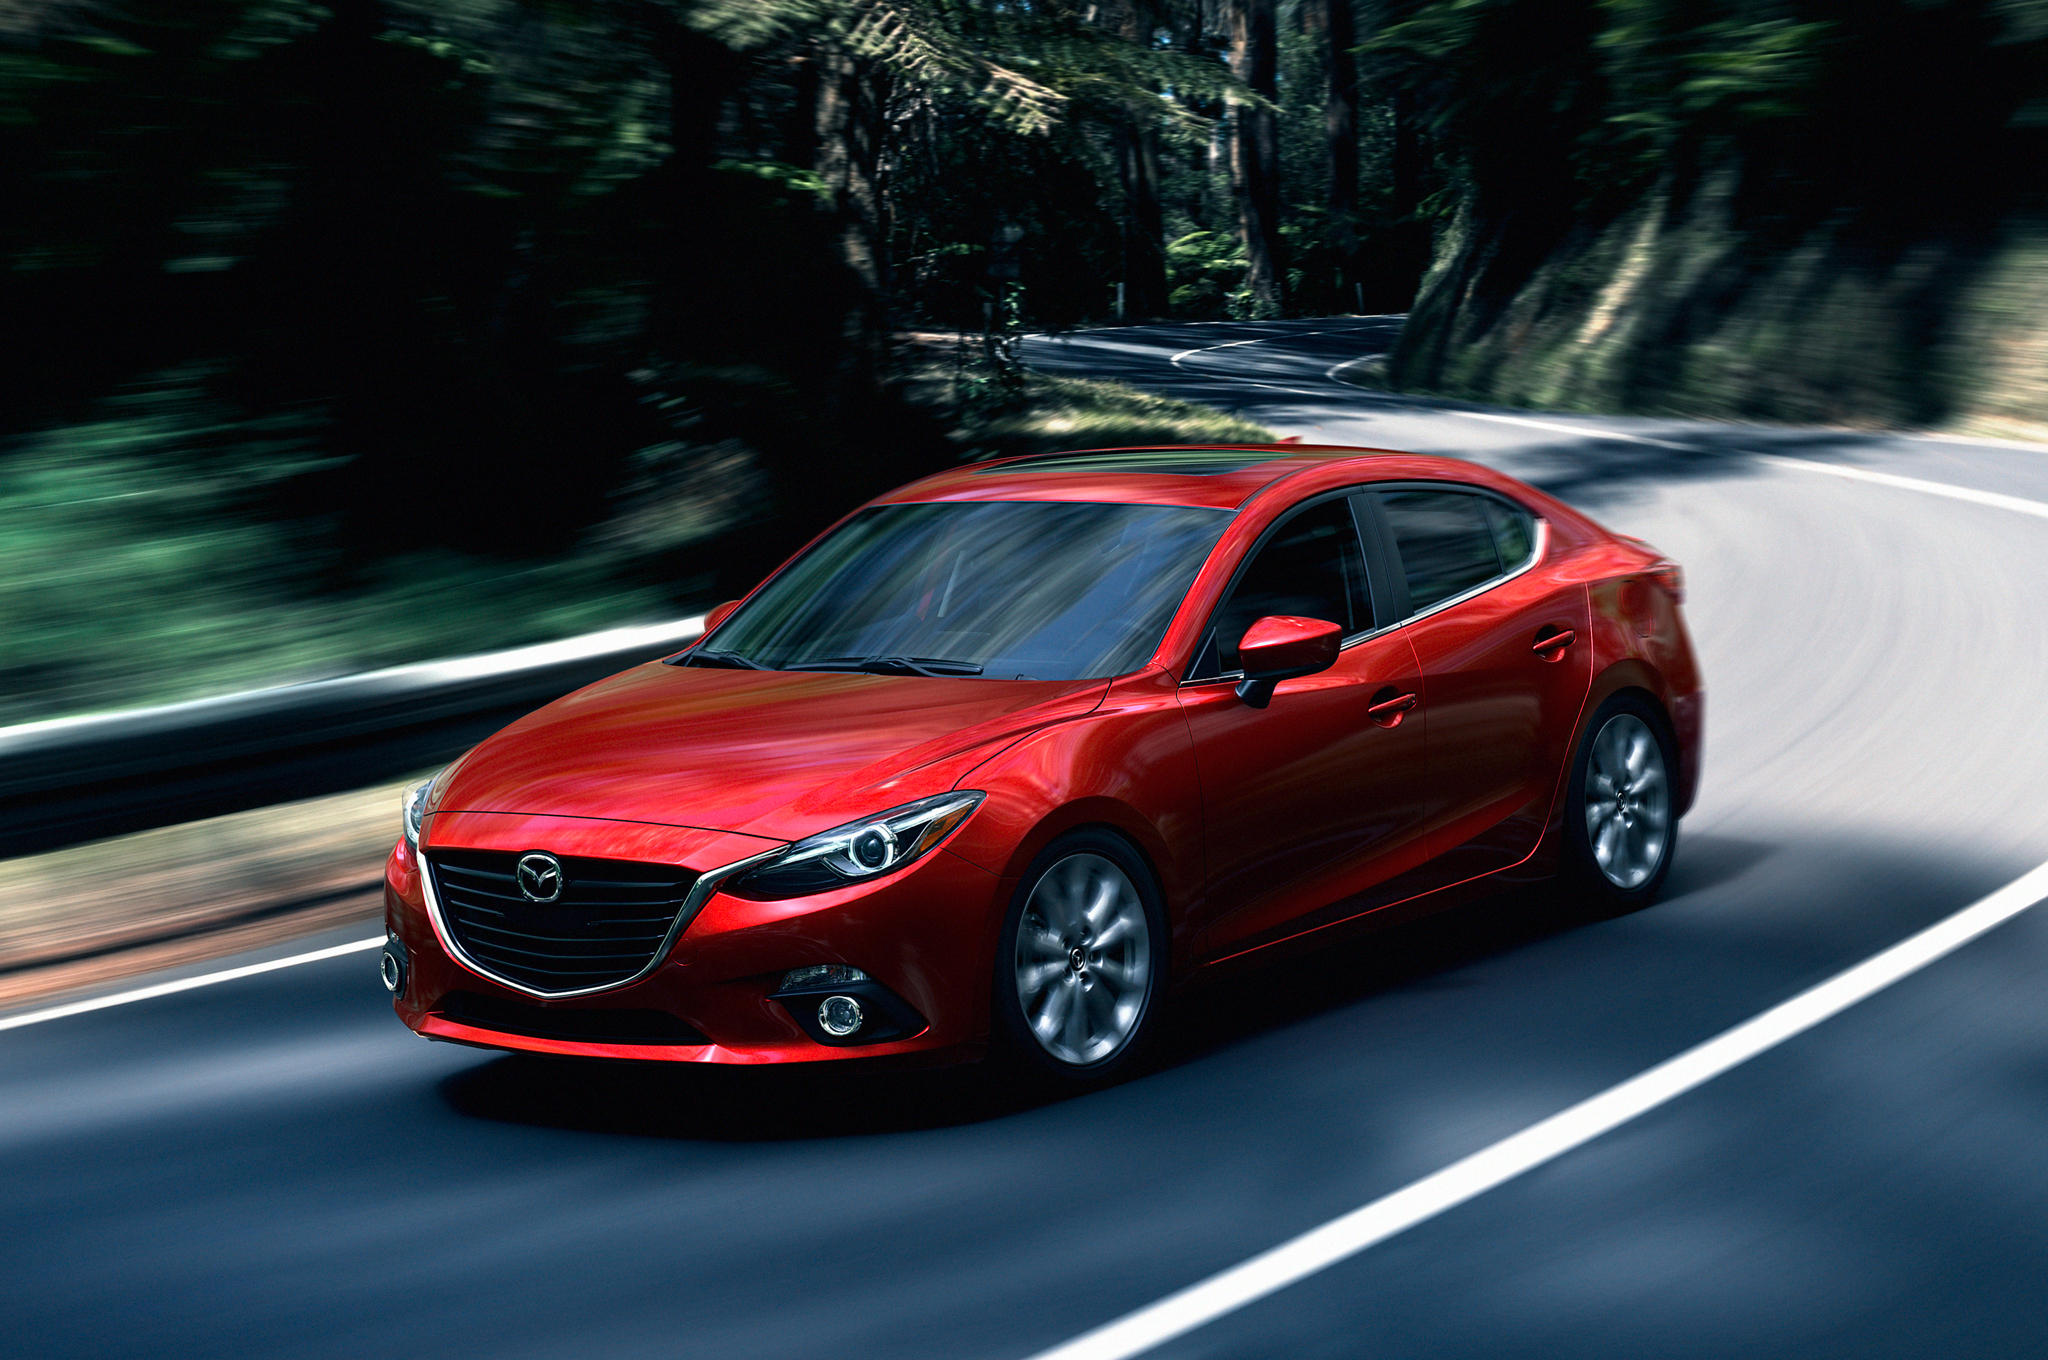 We Hear Mazda To Reveal Mazdaspeed3 This Year With 300 Hp And Awd 3 06 Fuse Box